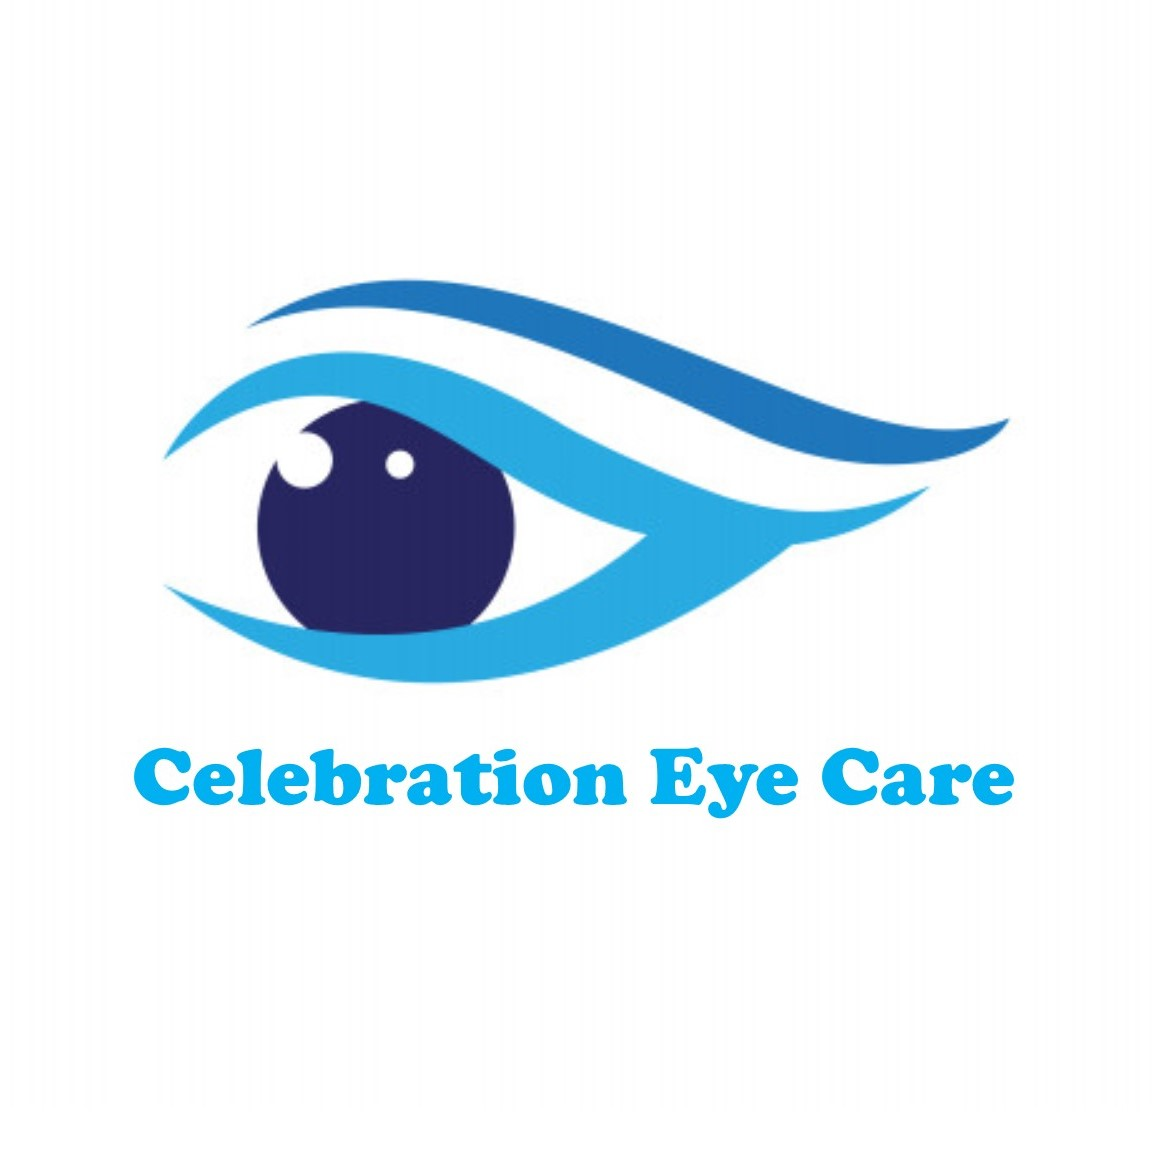 Celebration Eye Care